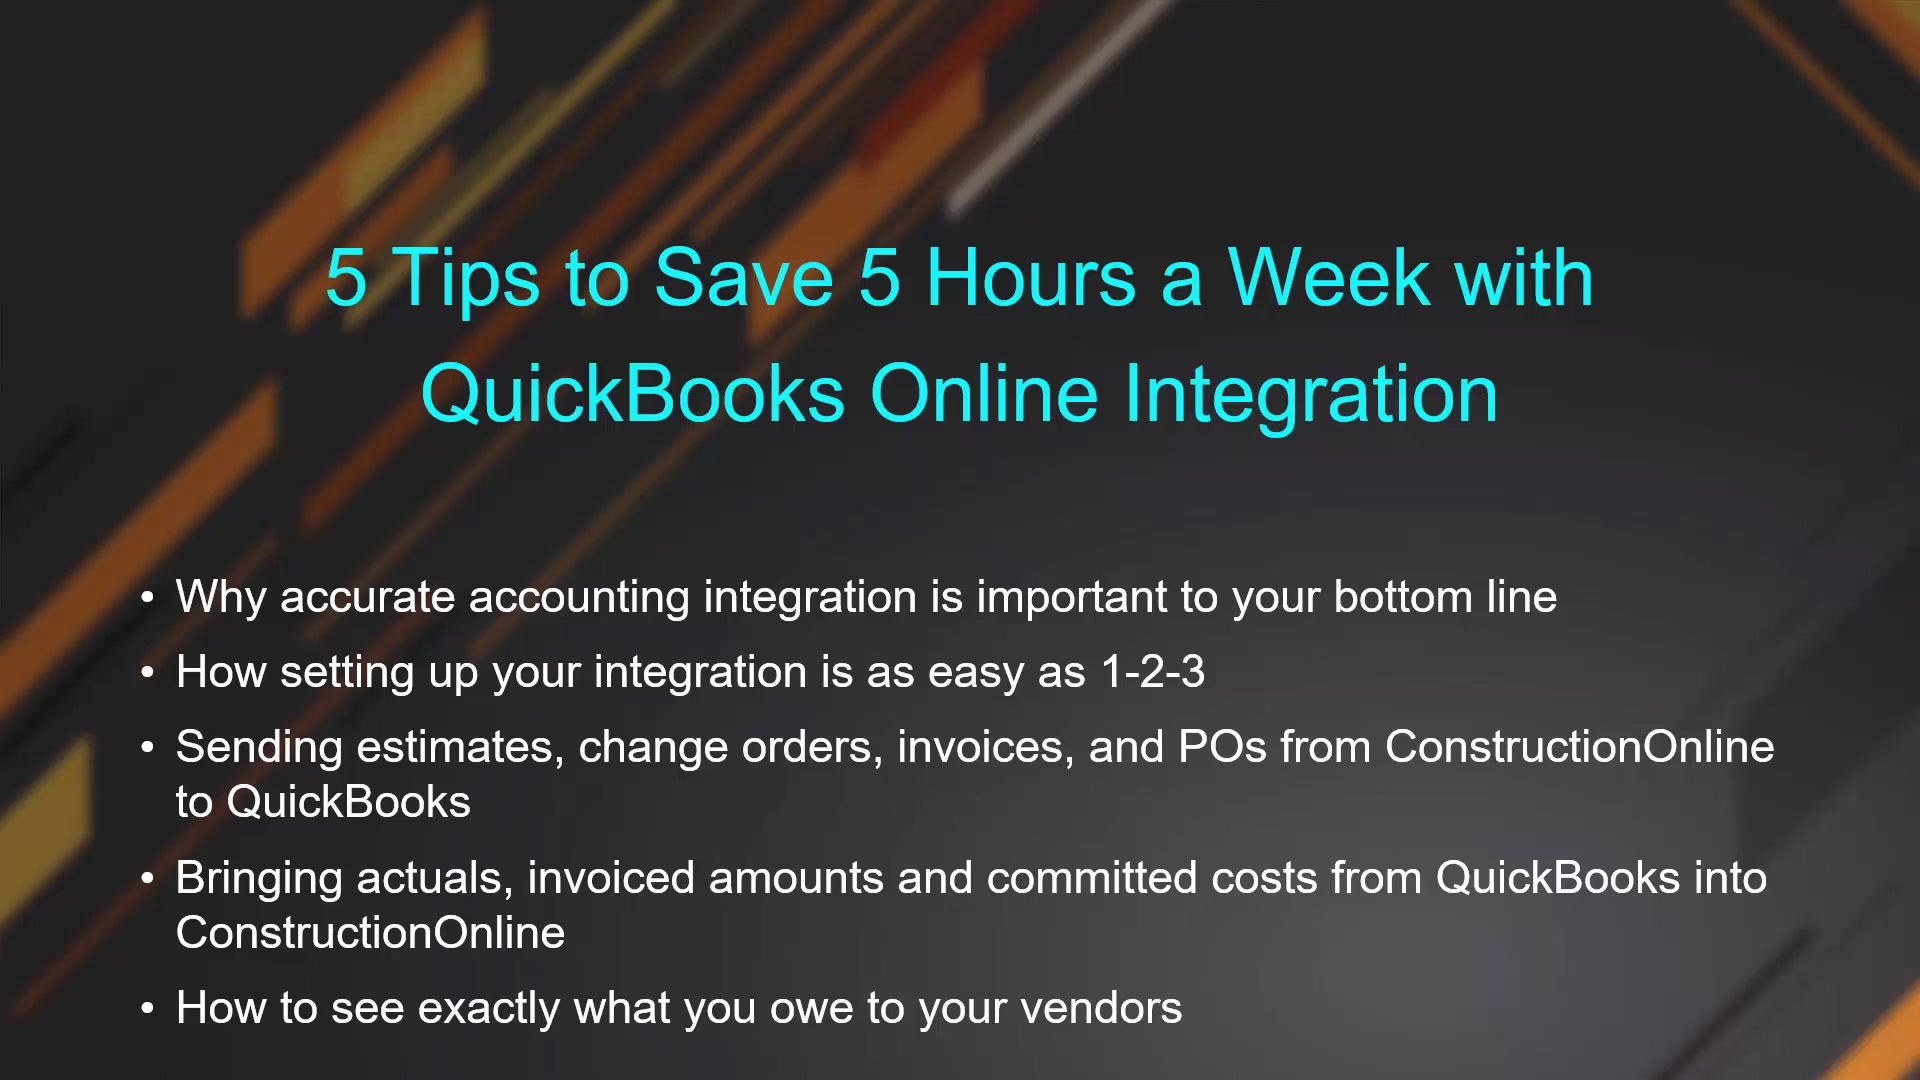 5 Tips to Save 5 Hours a Week with QuickBooks Online Integration_2